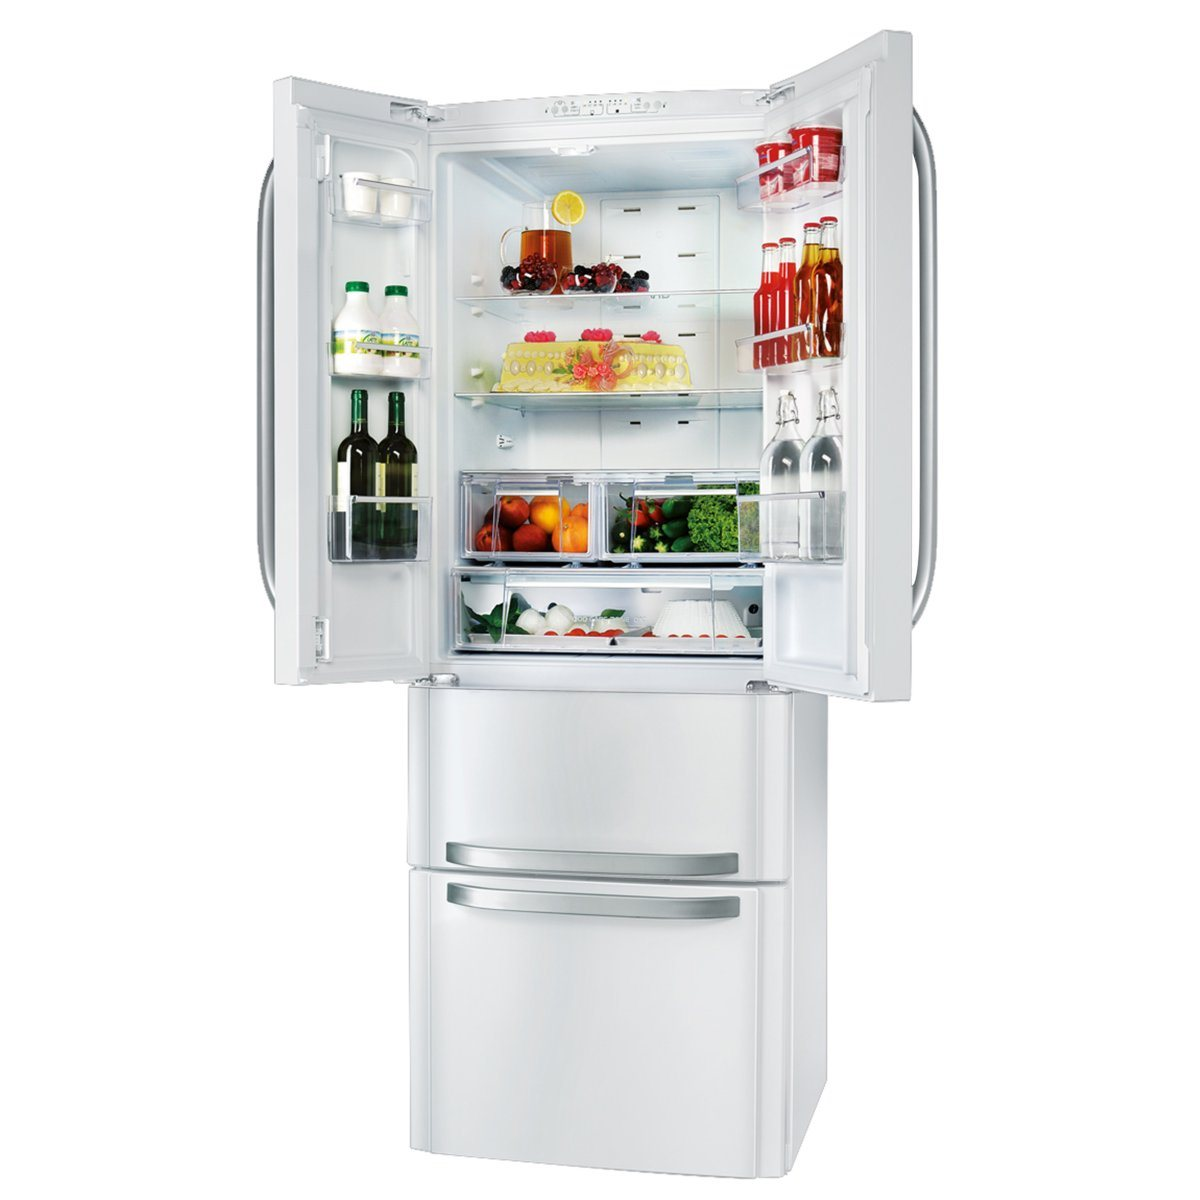 R frig rateur hotpoint ariston e4daawc pas cher for Refrigerateur but